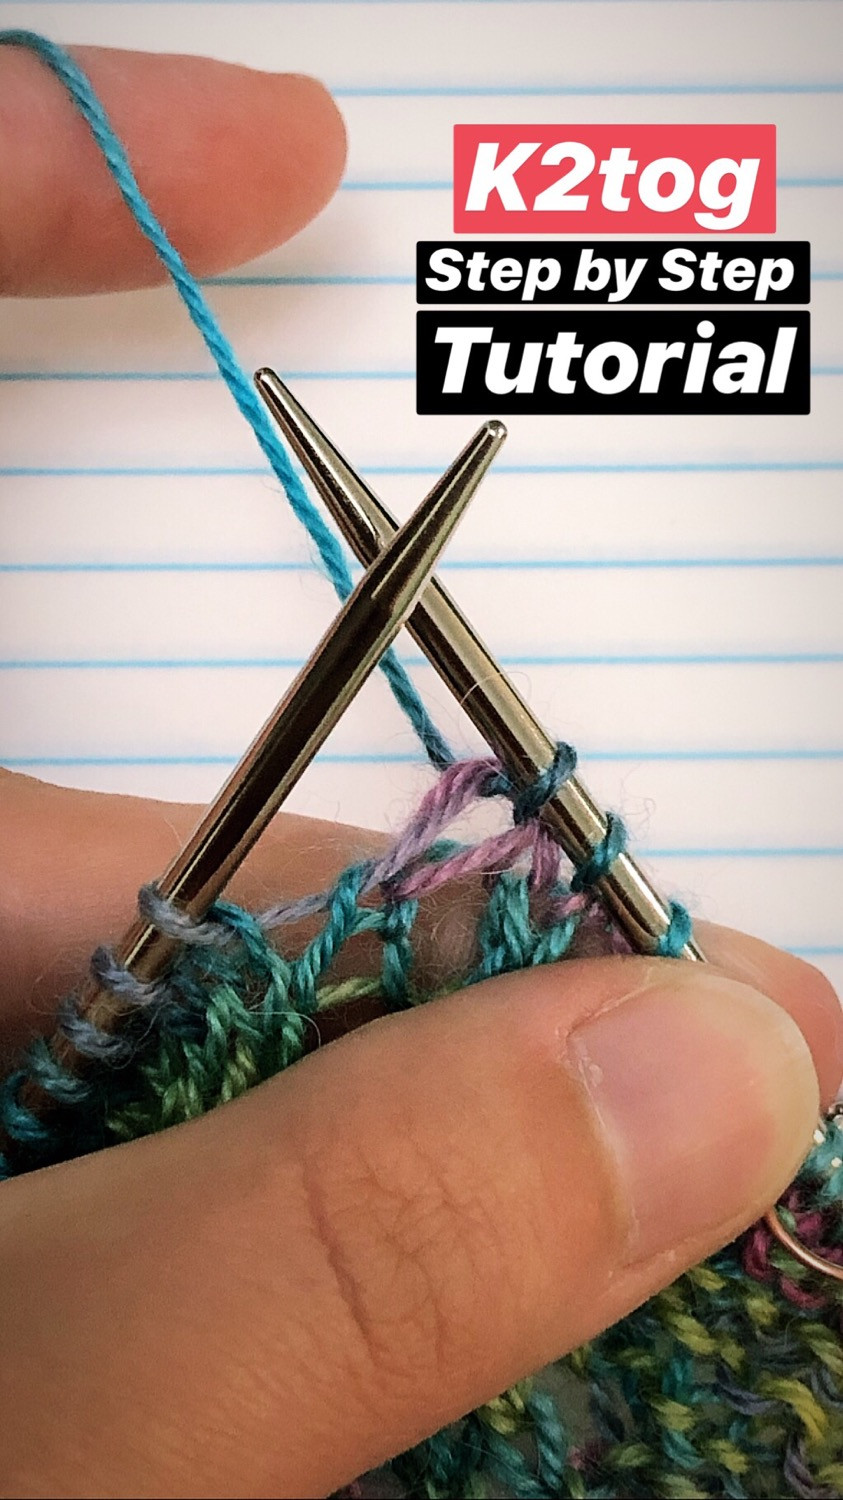 Step by Step k2tog (knit 2 together) Knitting Tutorial